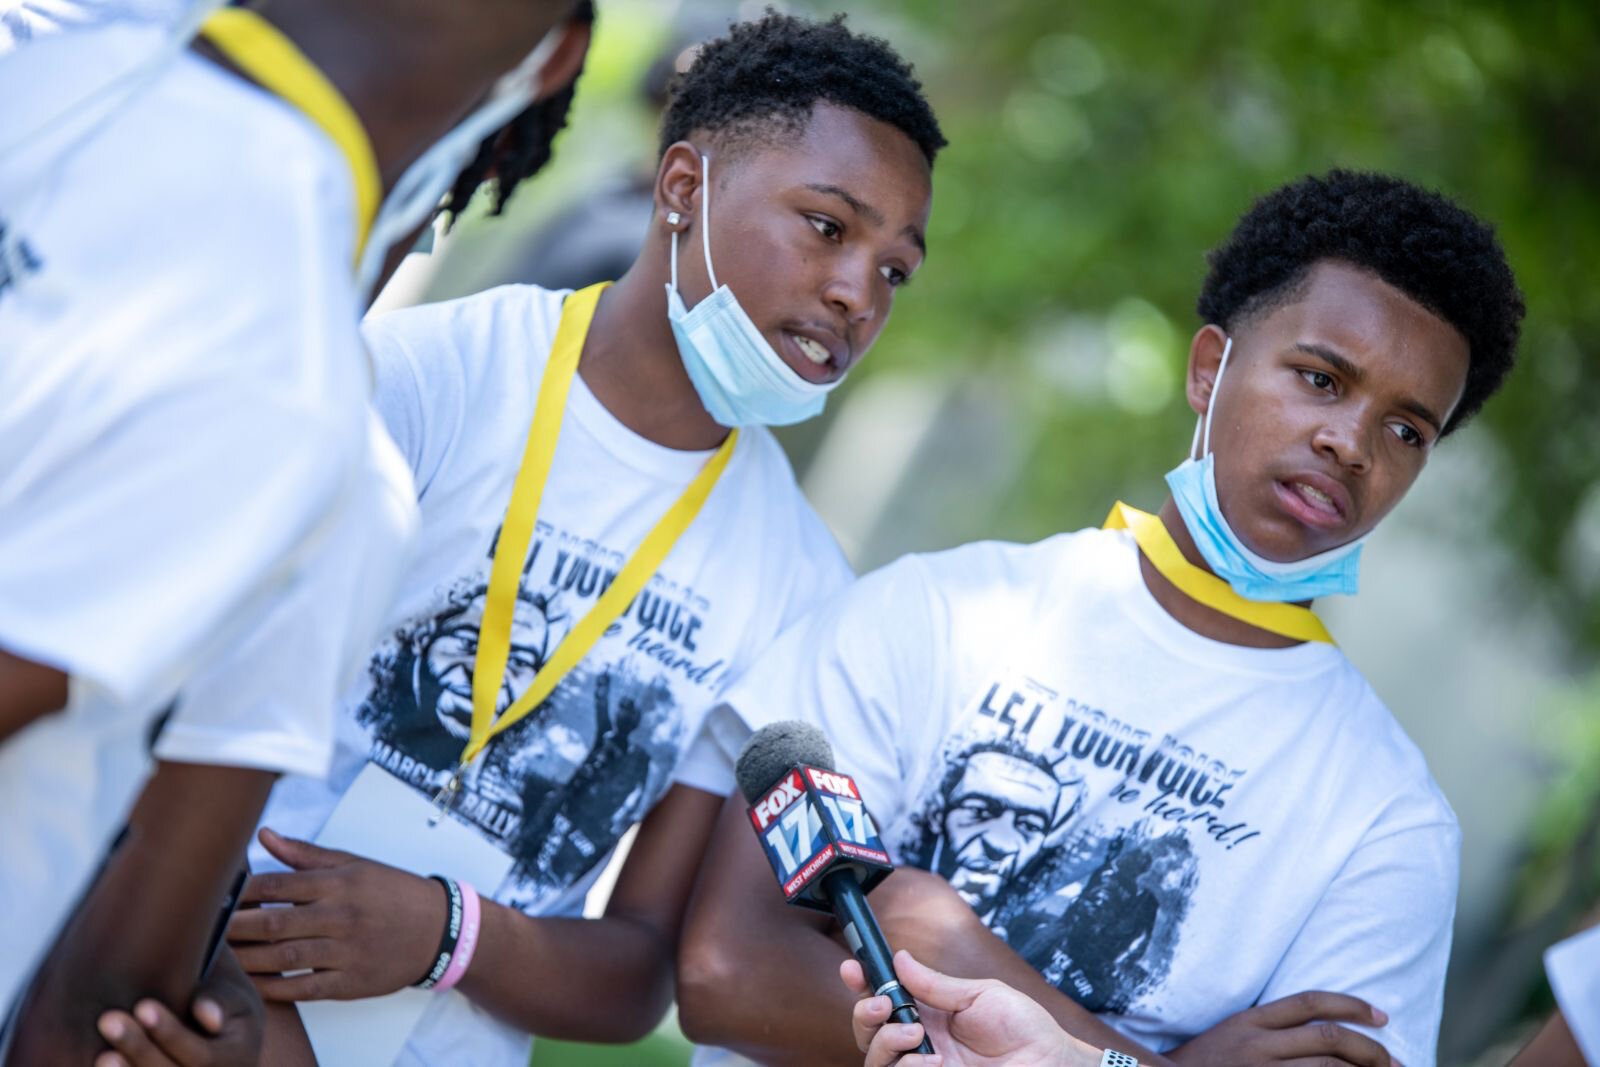 "Youth were encouraged to ""Let Your Voice Be Heard"" at the rally and march in Kalamazoo."